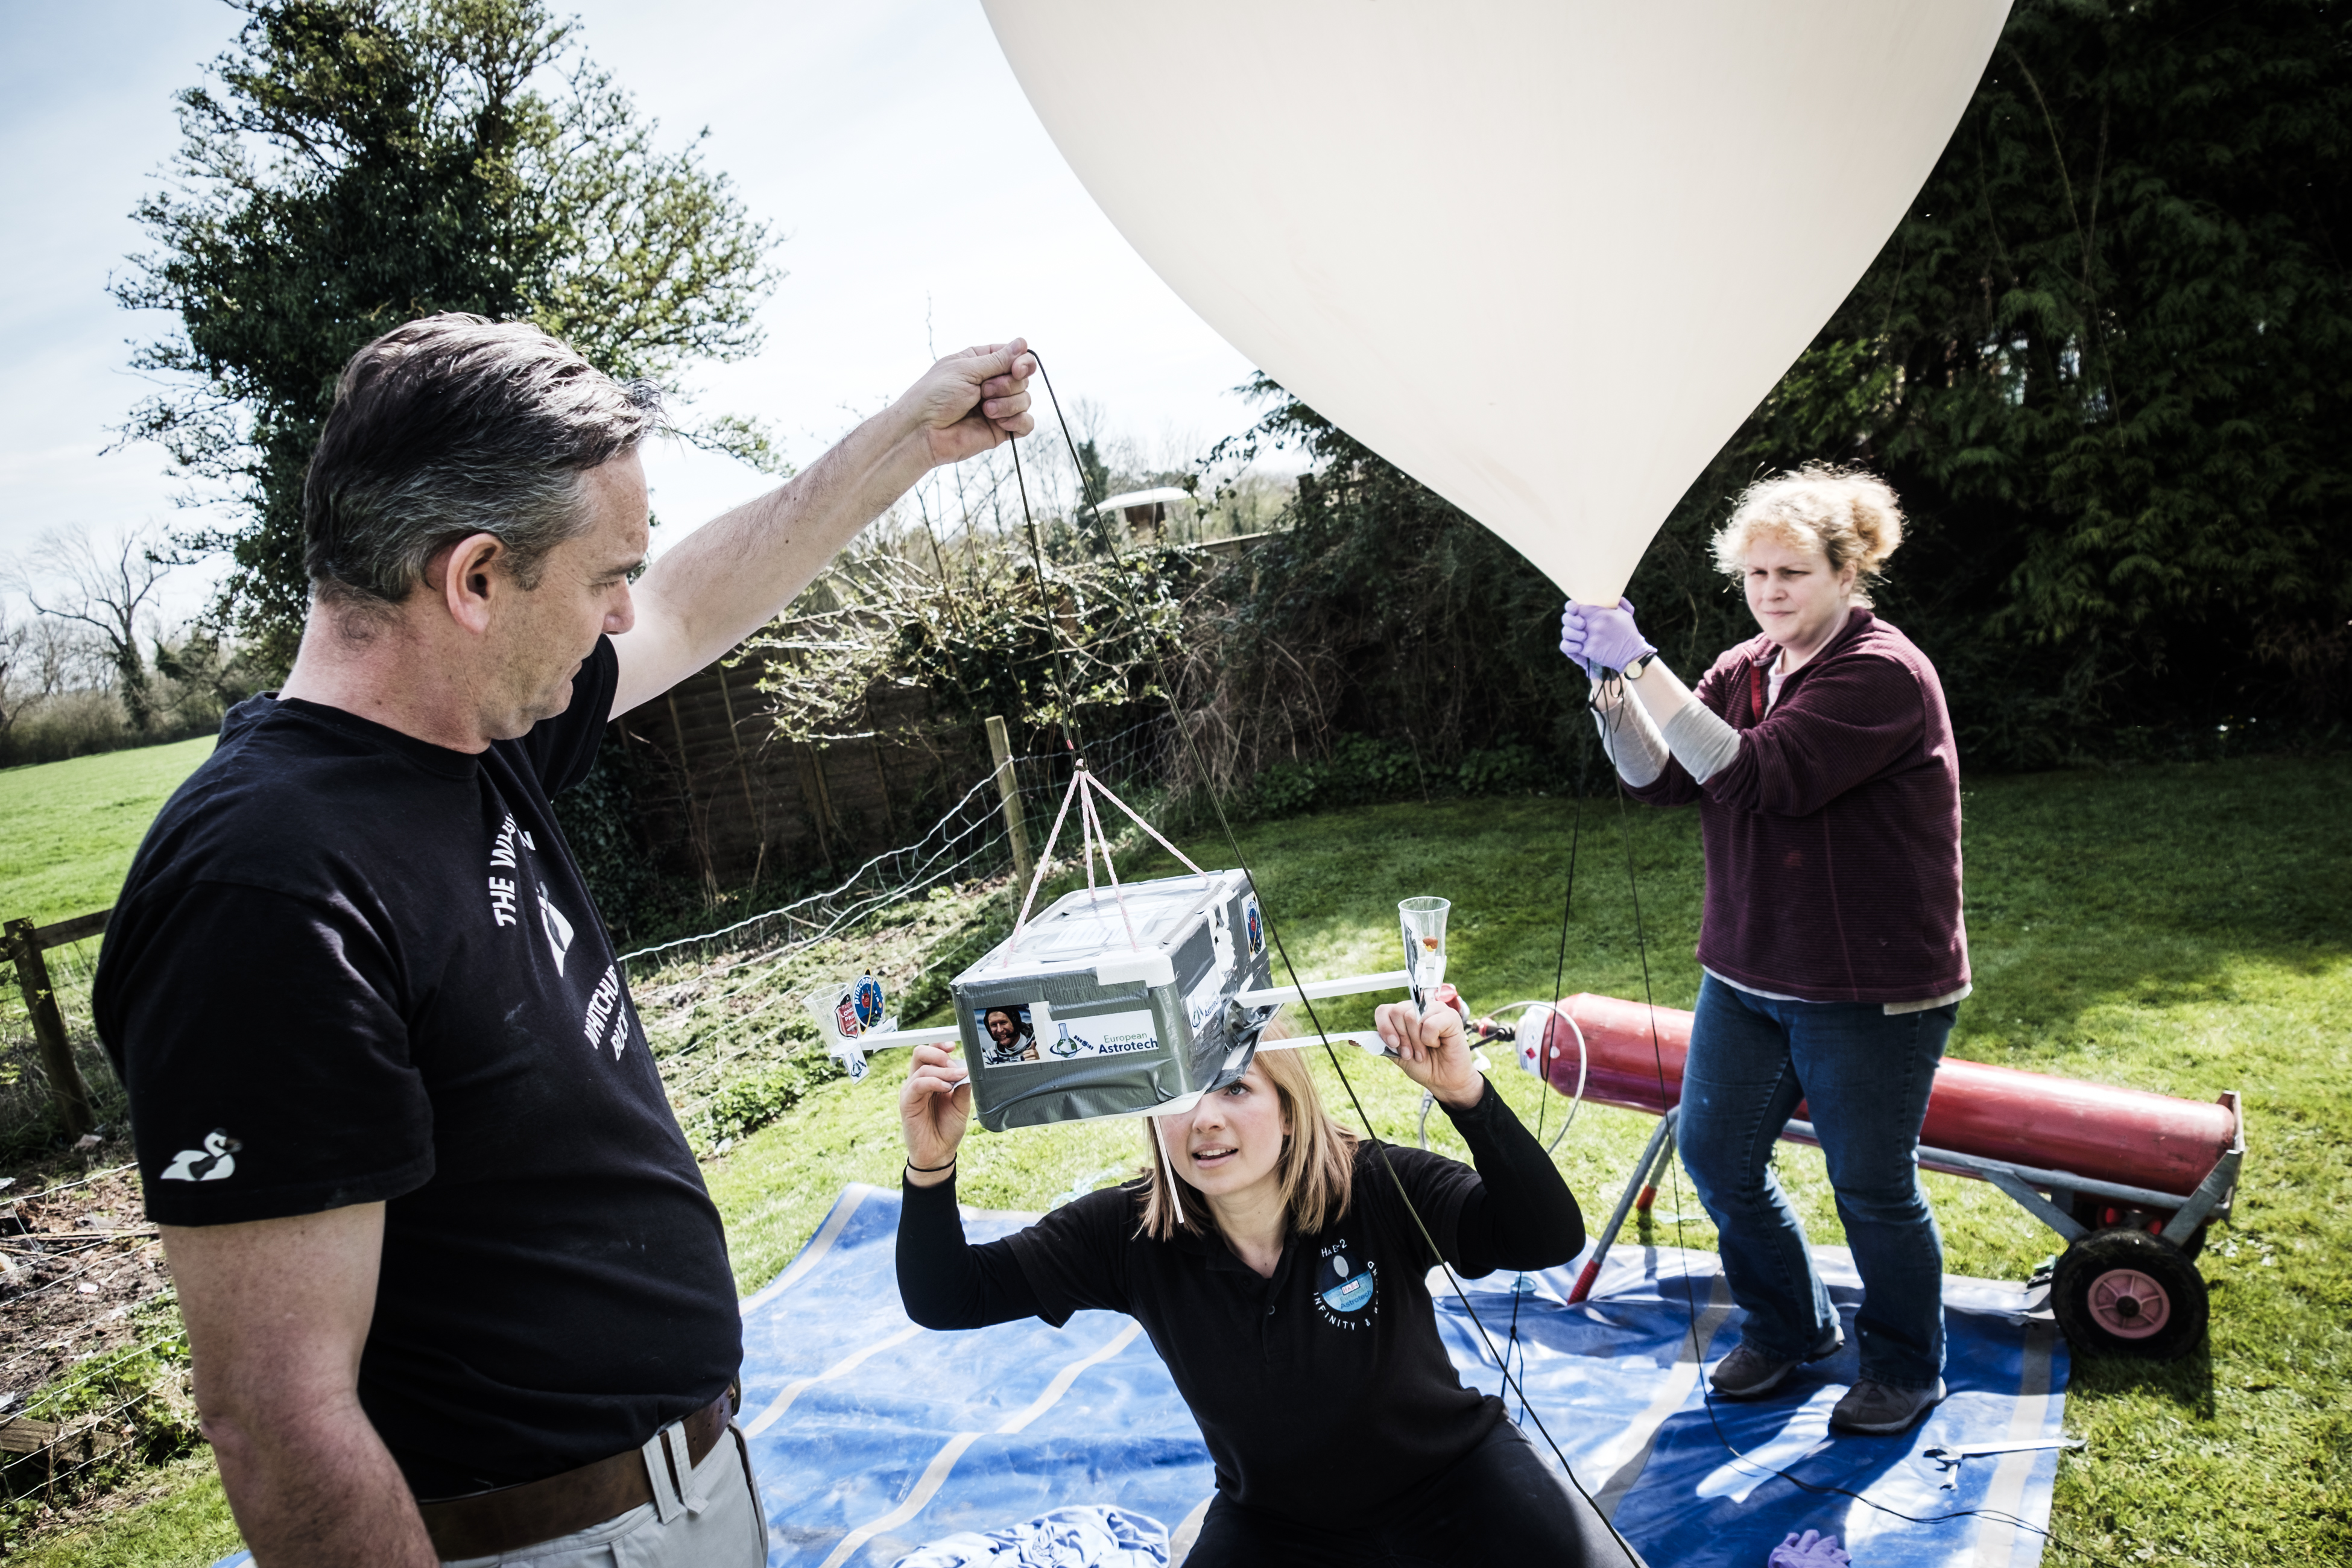 High Altitude Space Balloons Near Space, Education or Promotional Launch 1